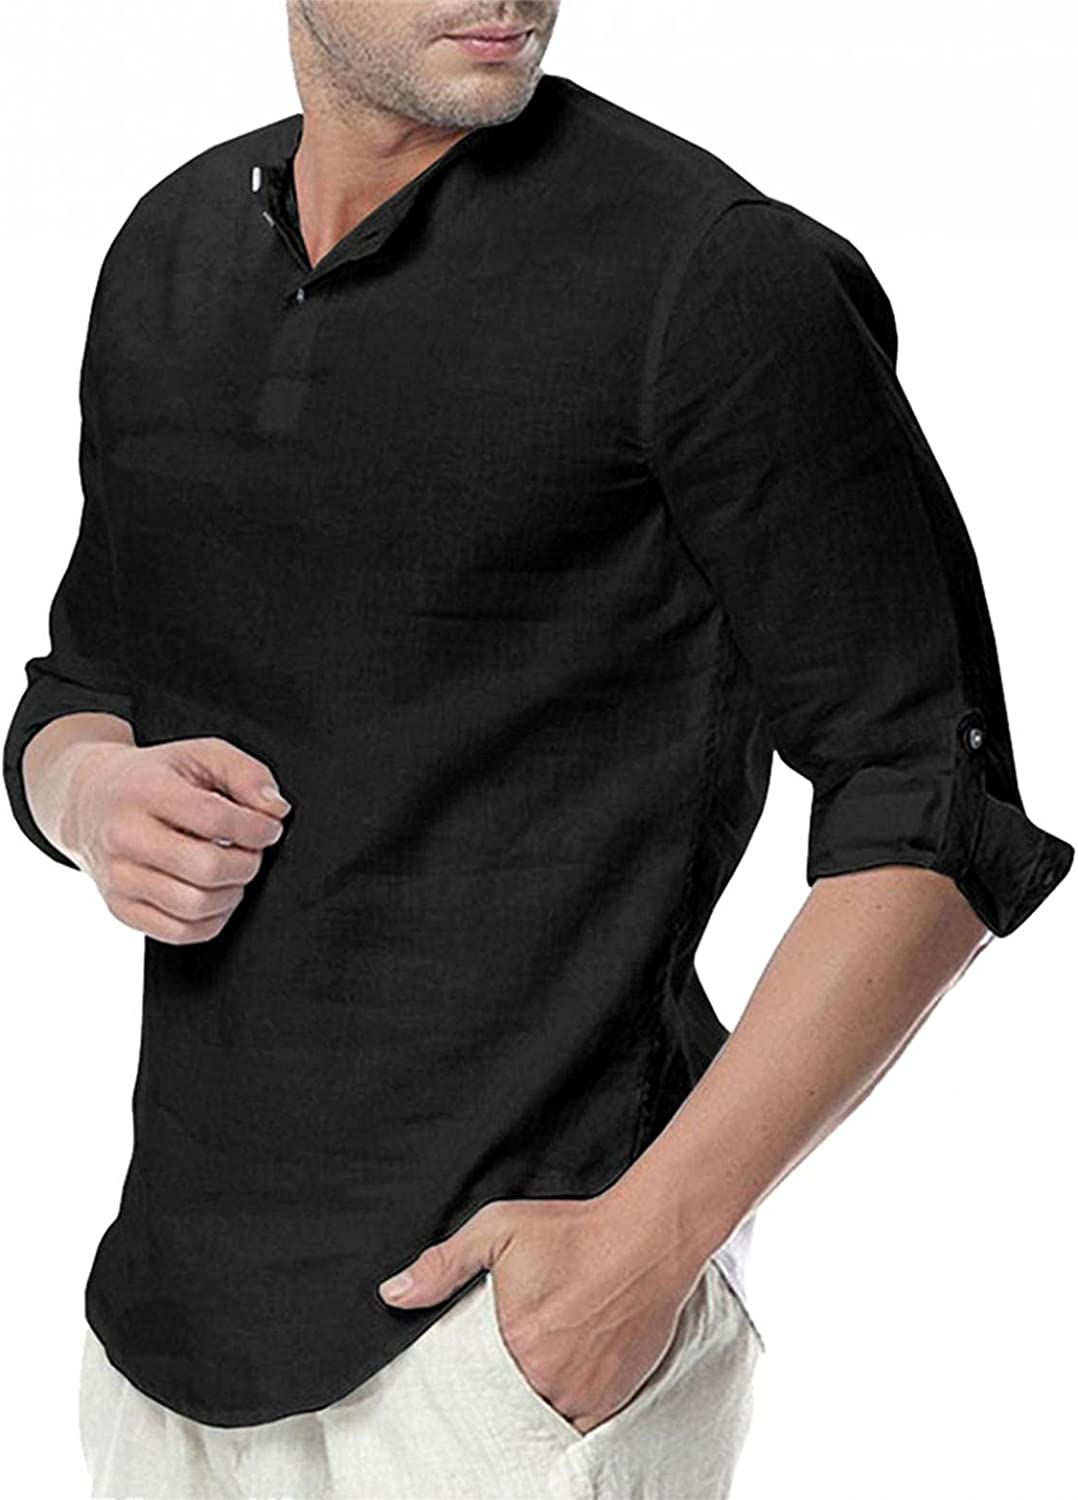 Men's Henley Shirt Casual V Neck Button Sleeve Solid Color T-Shirt Shirt Cotton and Hemp Top Blouse